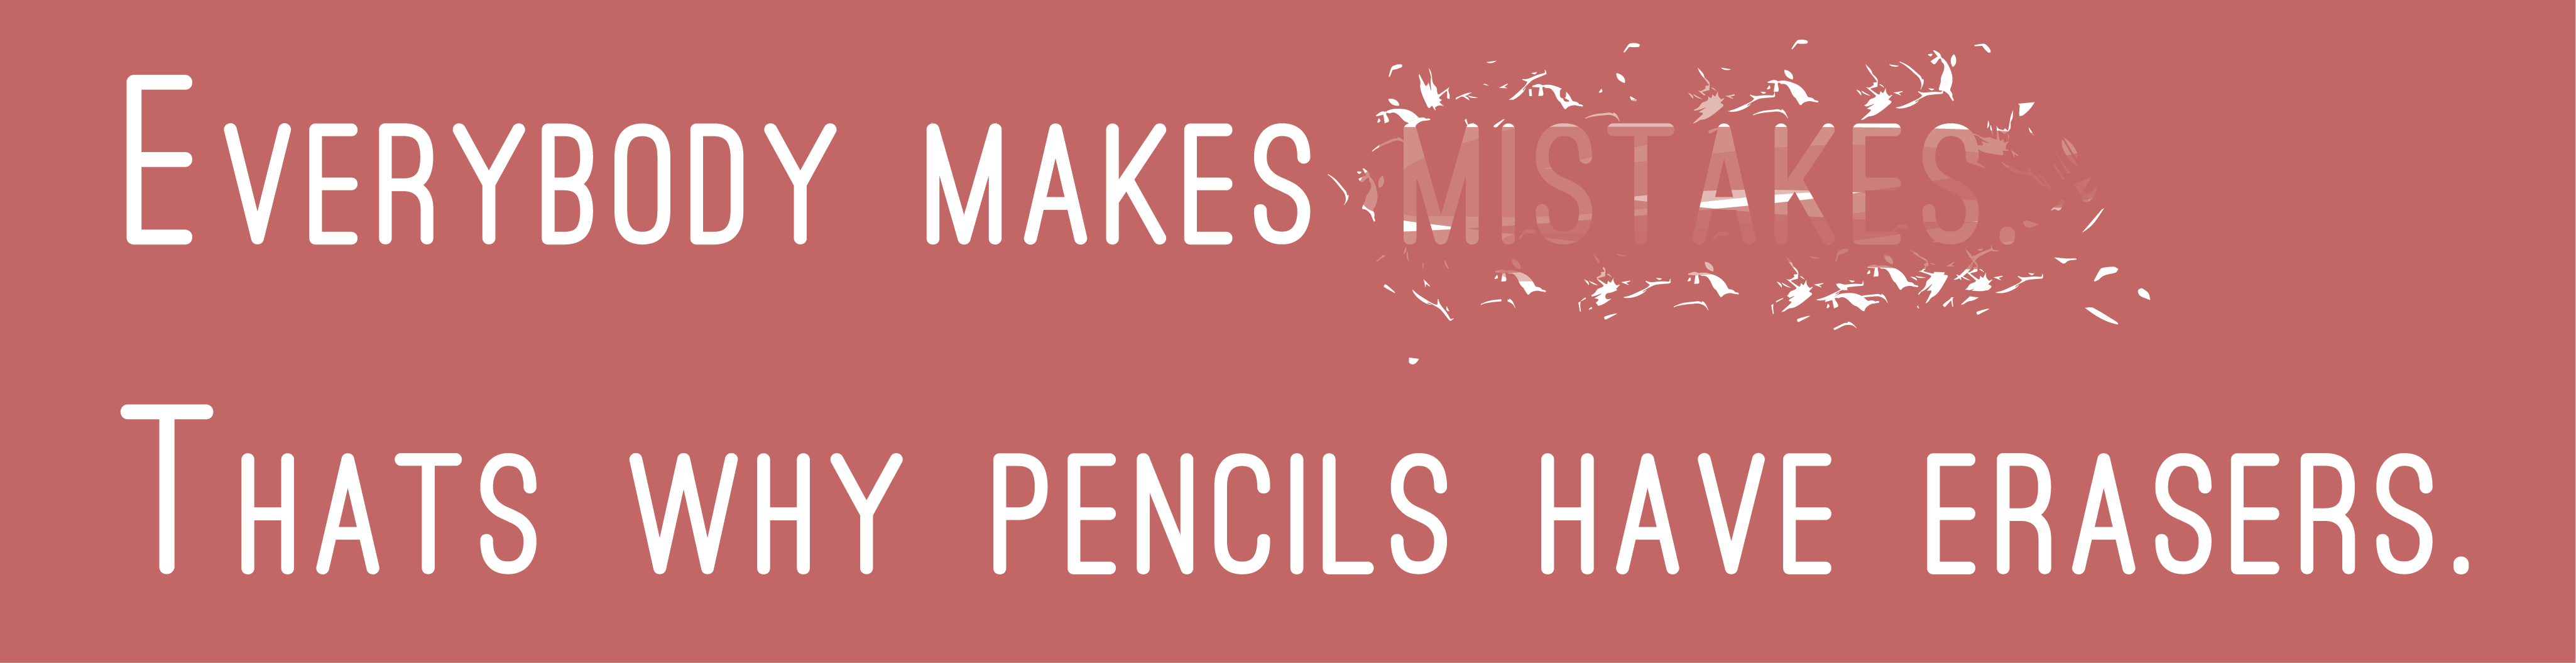 Everybody makes mistakes  Thats why pencils have erasers  | Quotes